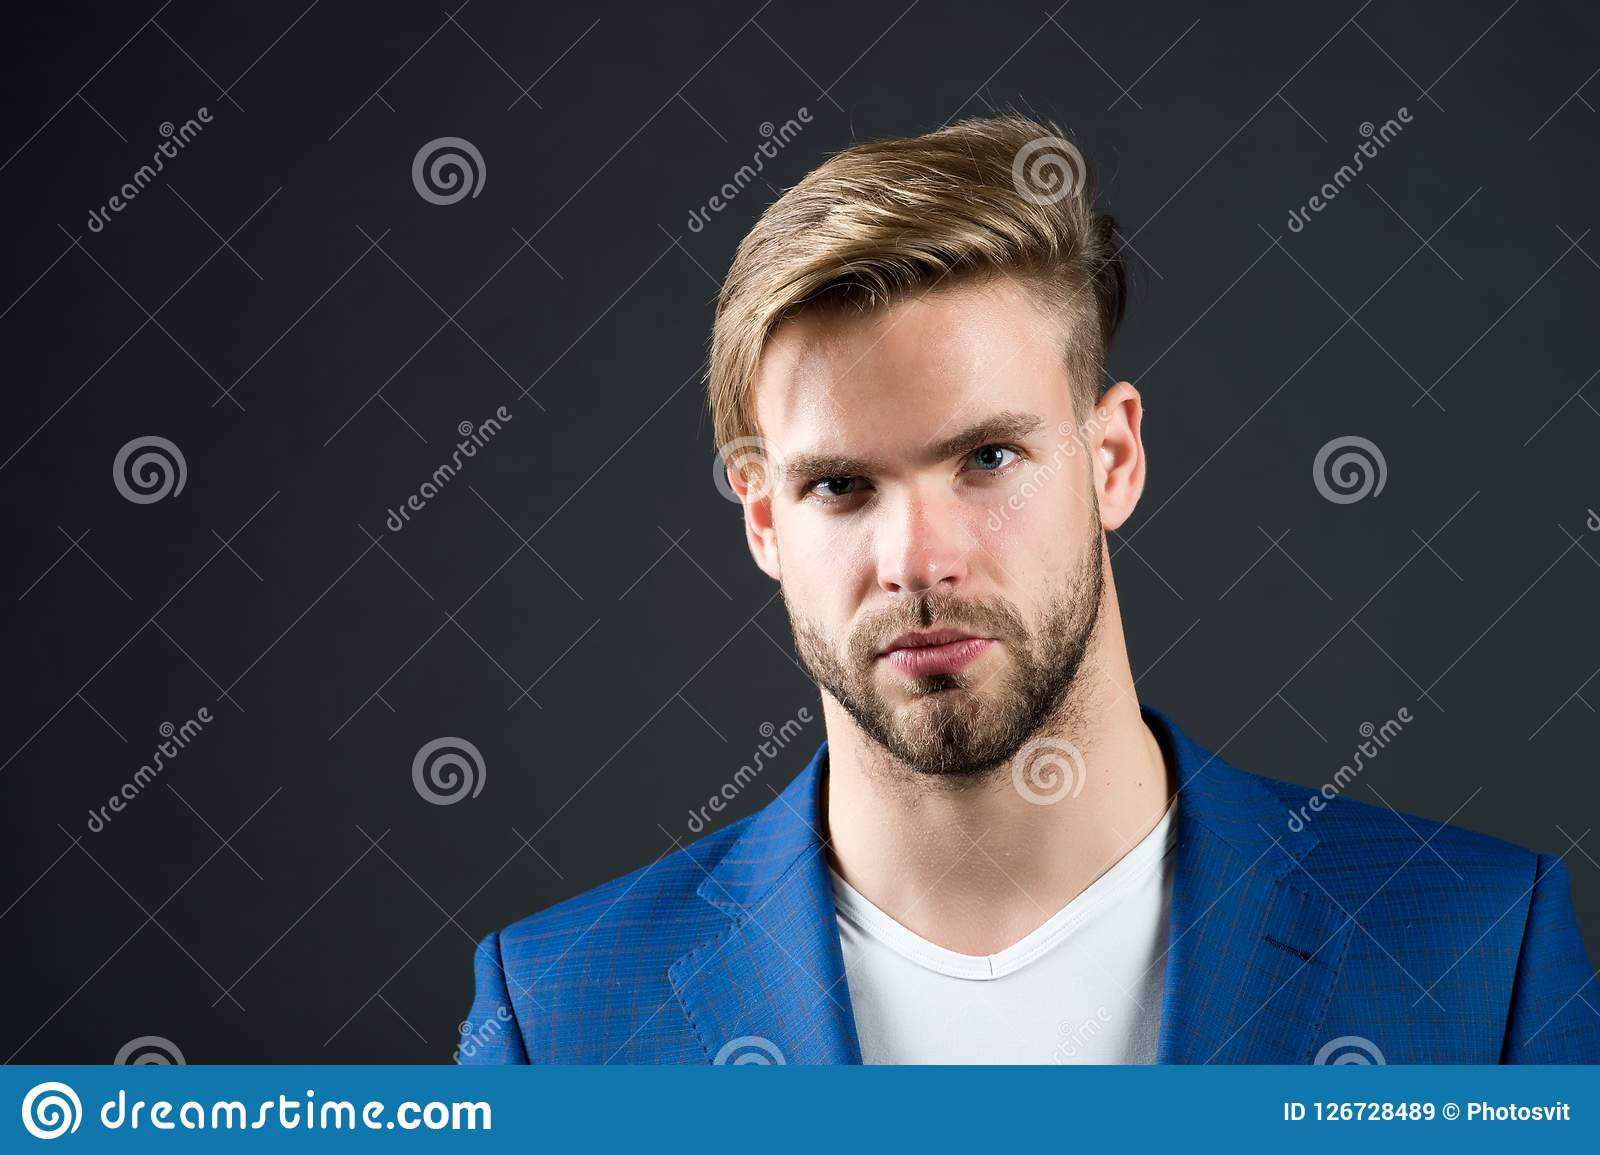 Man Serious Bearded Unshaven Guy With Perfect Hairstyle Dark